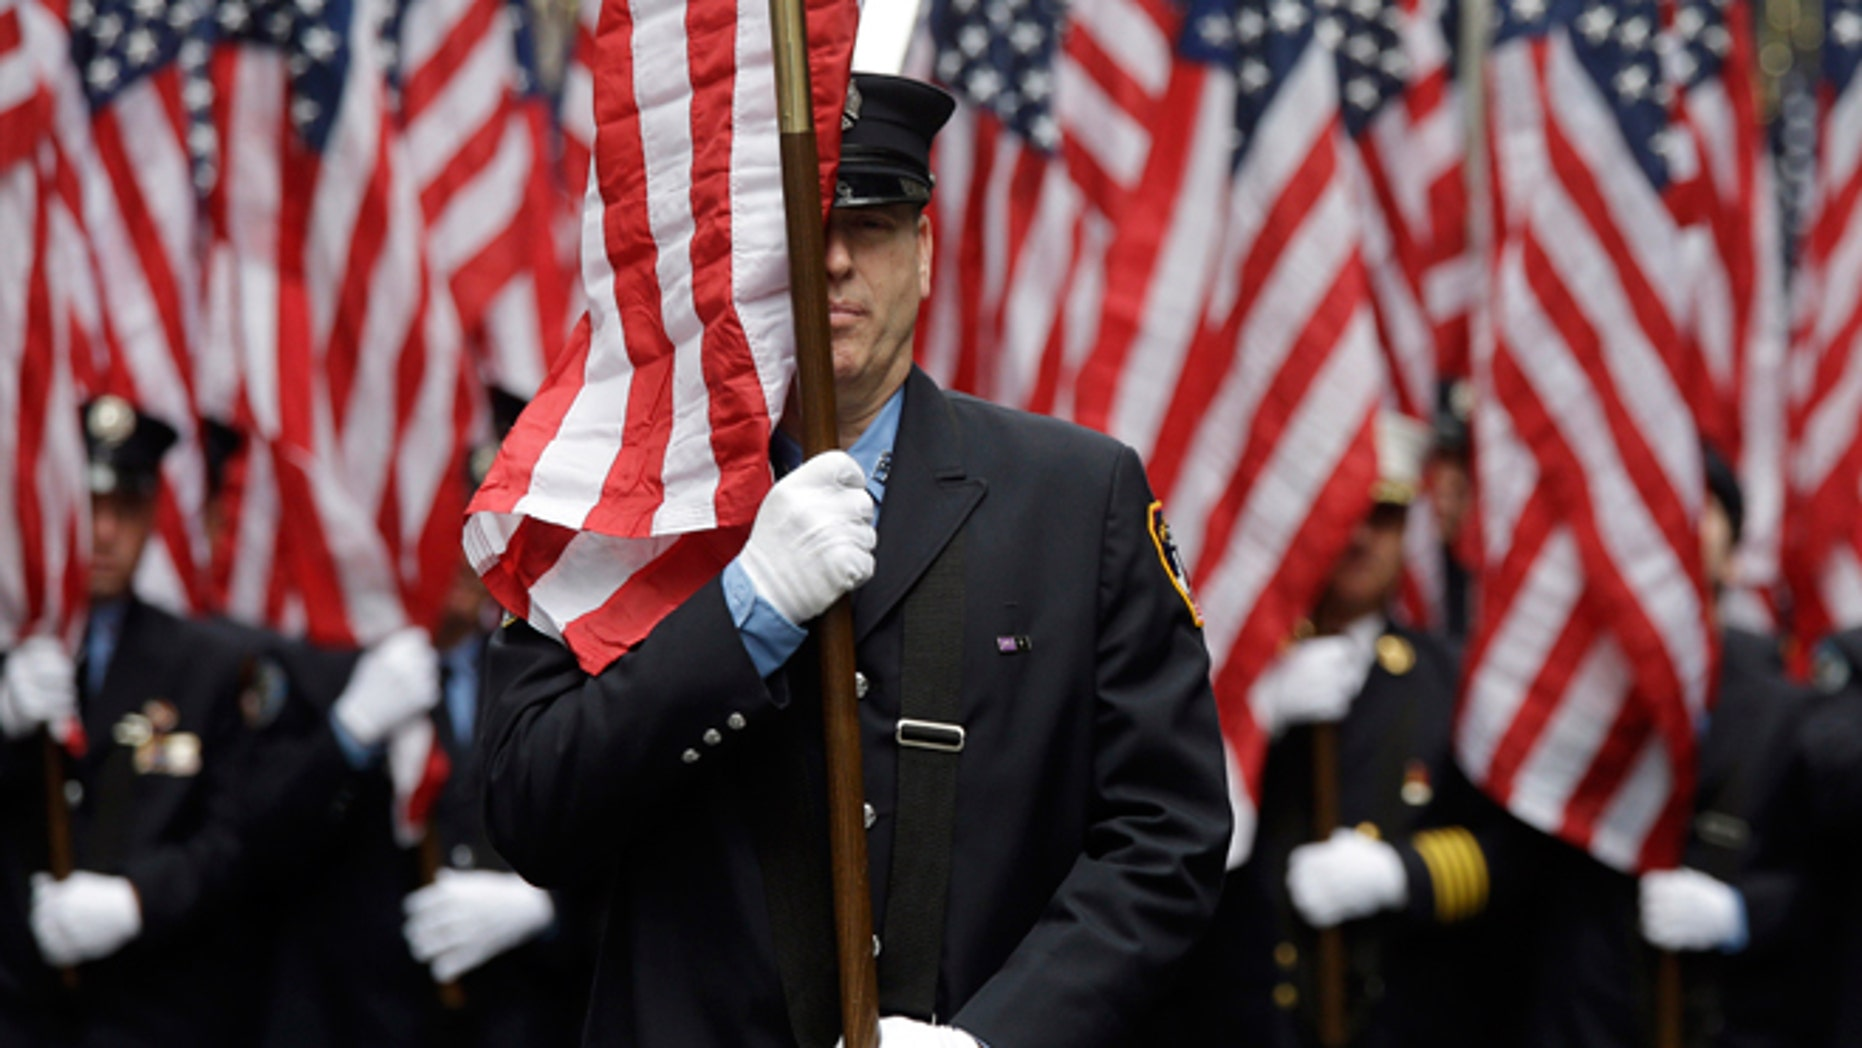 FILE -- March 17, 2015: Firefighters carrying 343 American flags representing each of their colleagues who died during the terrorist attacks on the World Trade Center, march up Fifth Ave. during the St. Patrick's Day Parade.